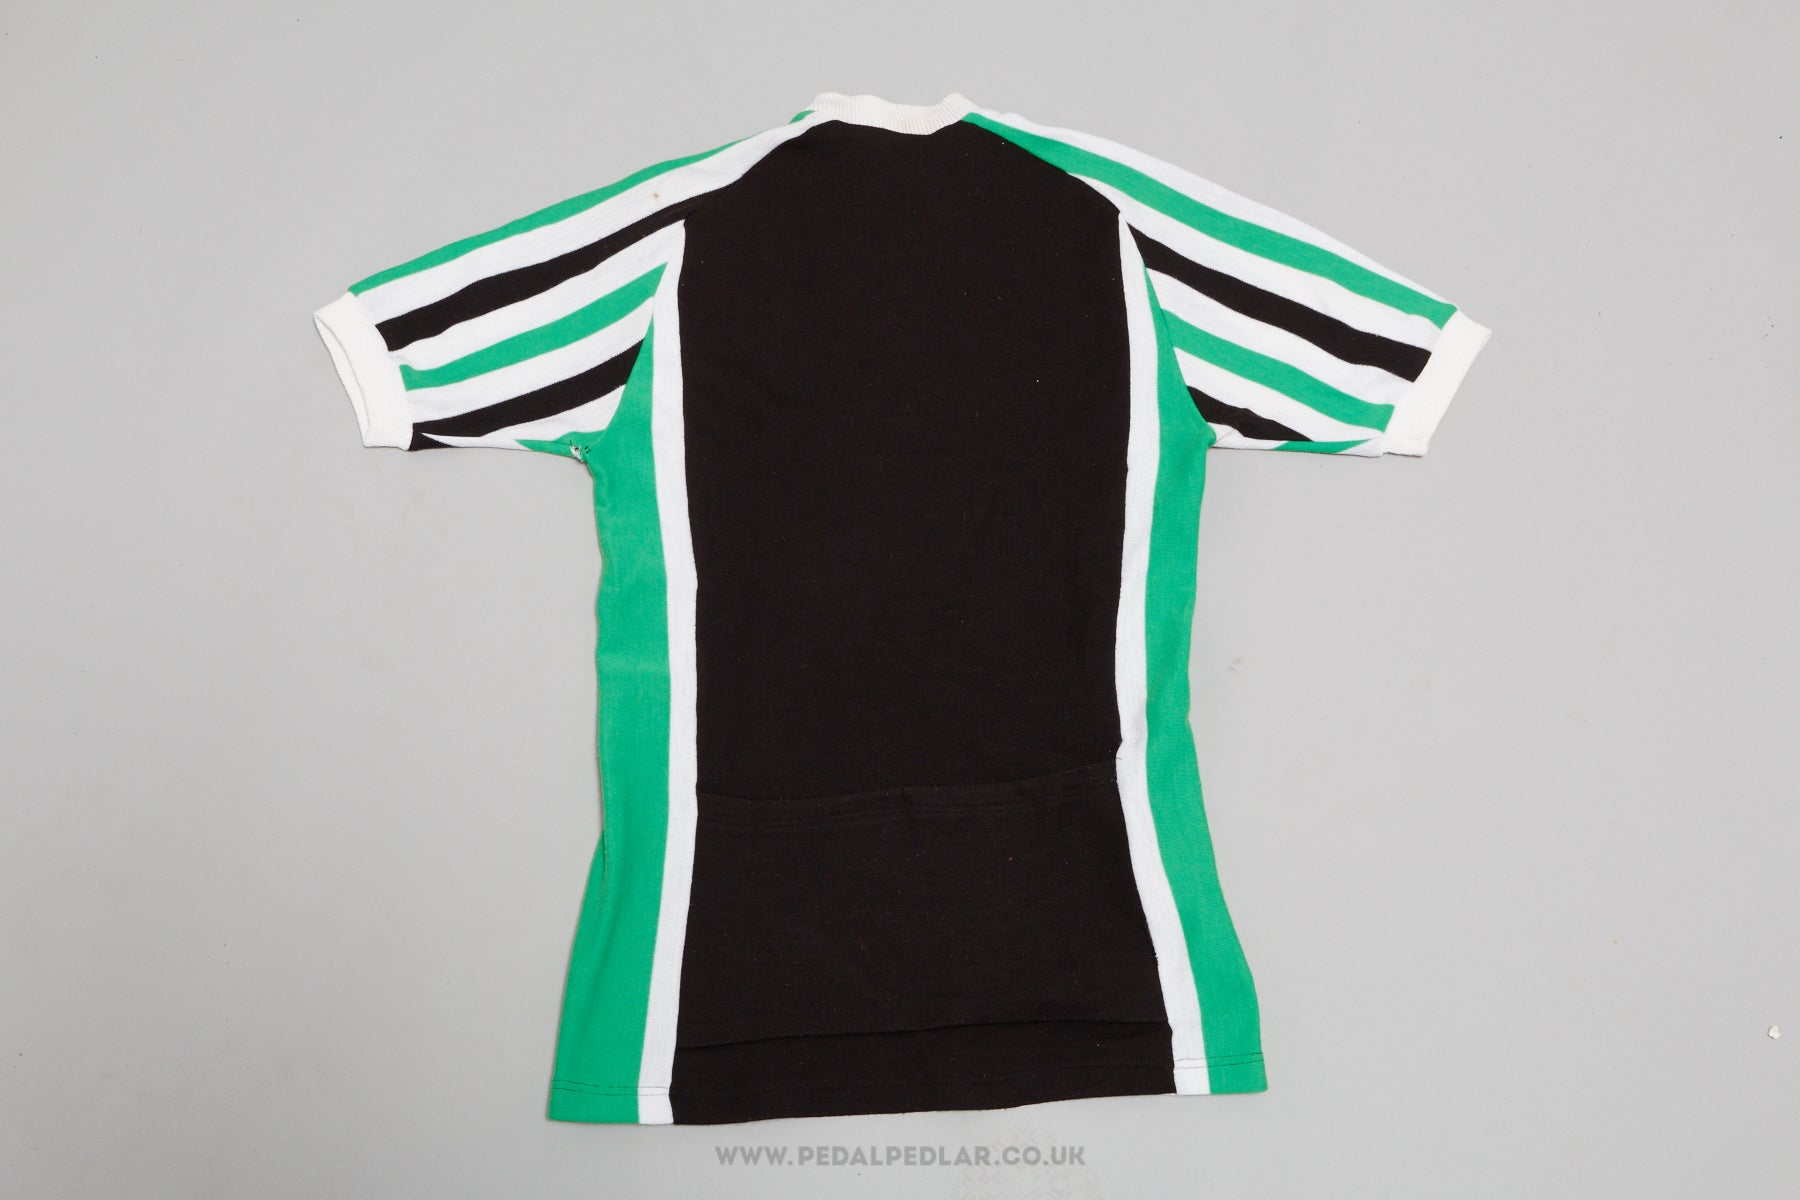 42306584c Black Green White Vintage Woollen Style Cycling Jersey